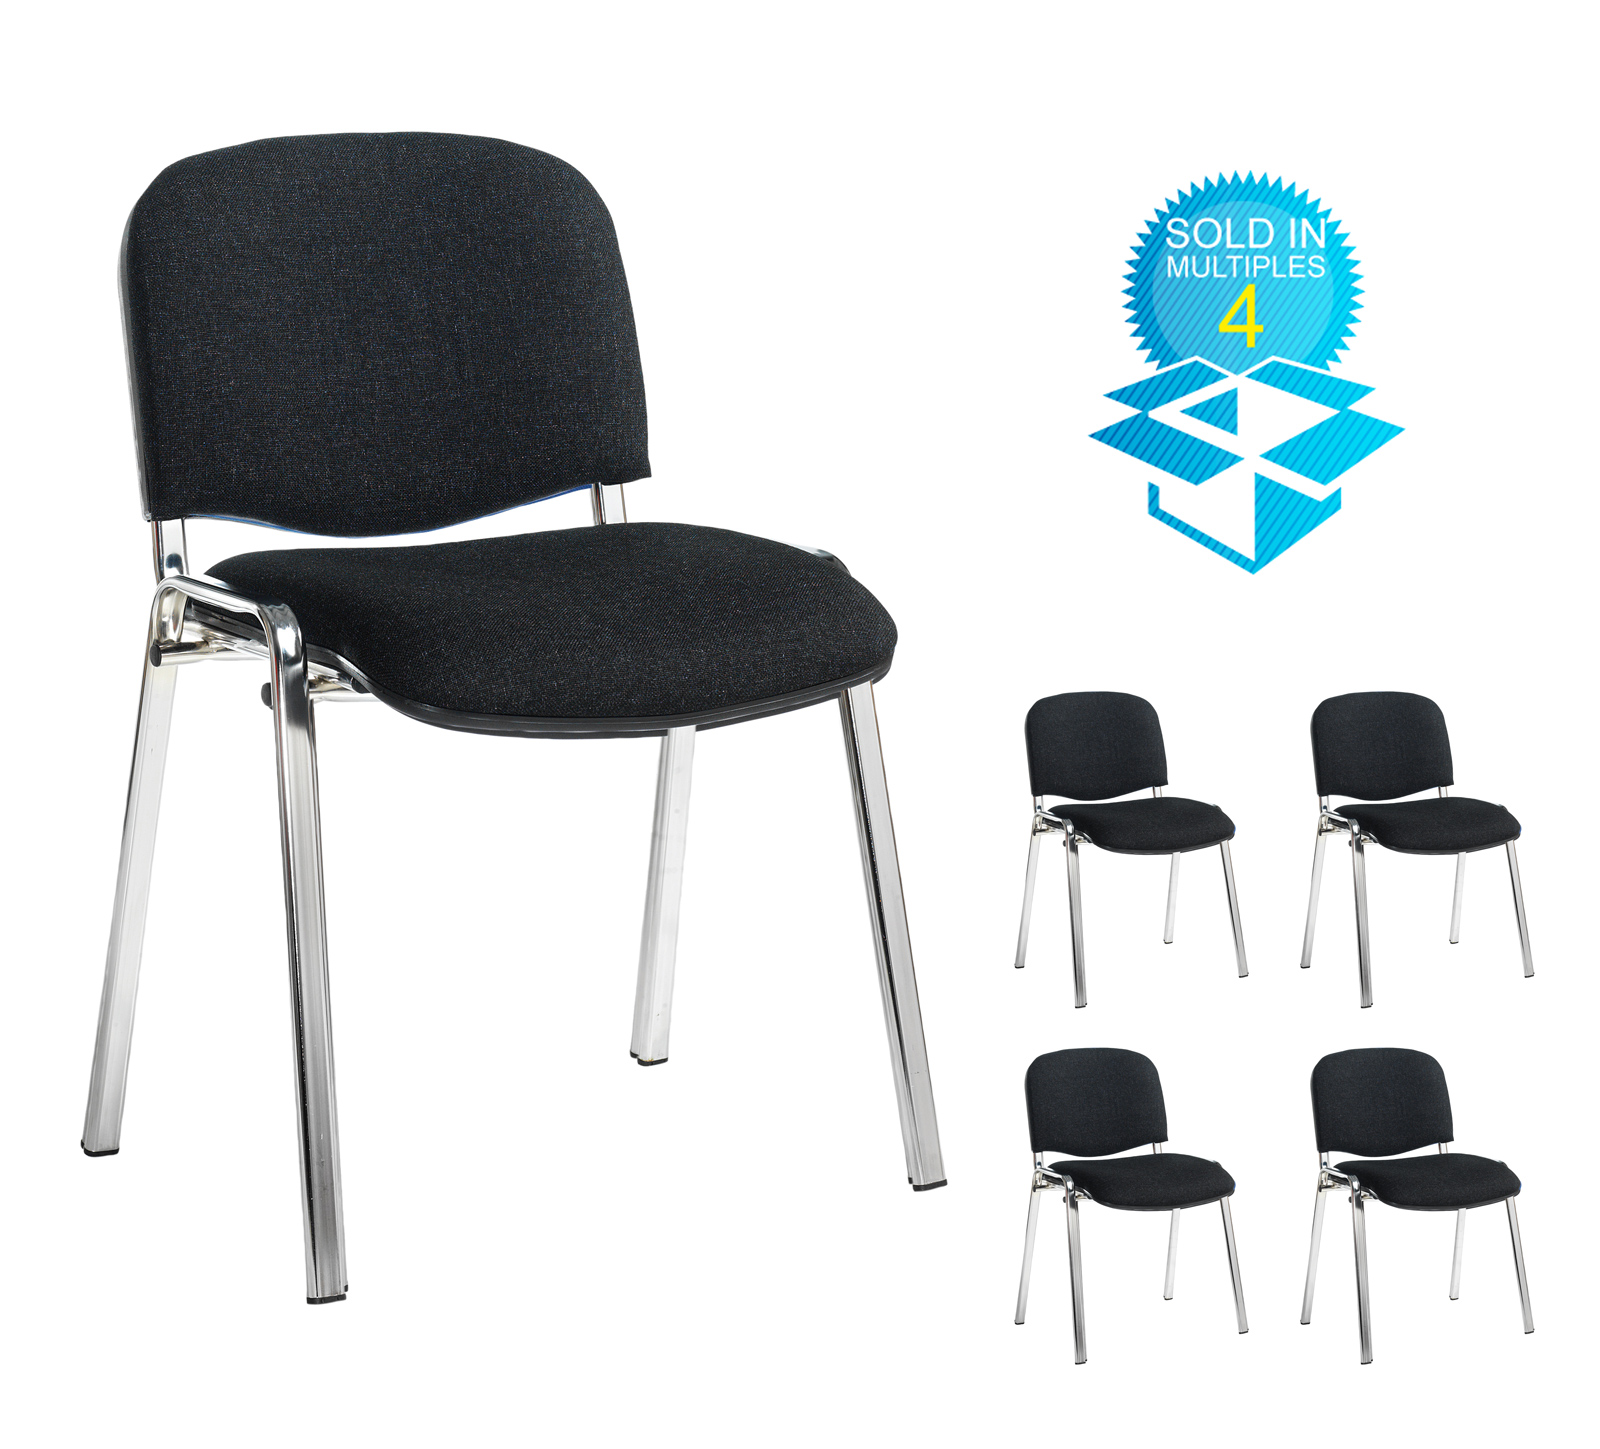 Taurus meeting room stackable chair (box of 4) with chrome frame and no arms - charcoal